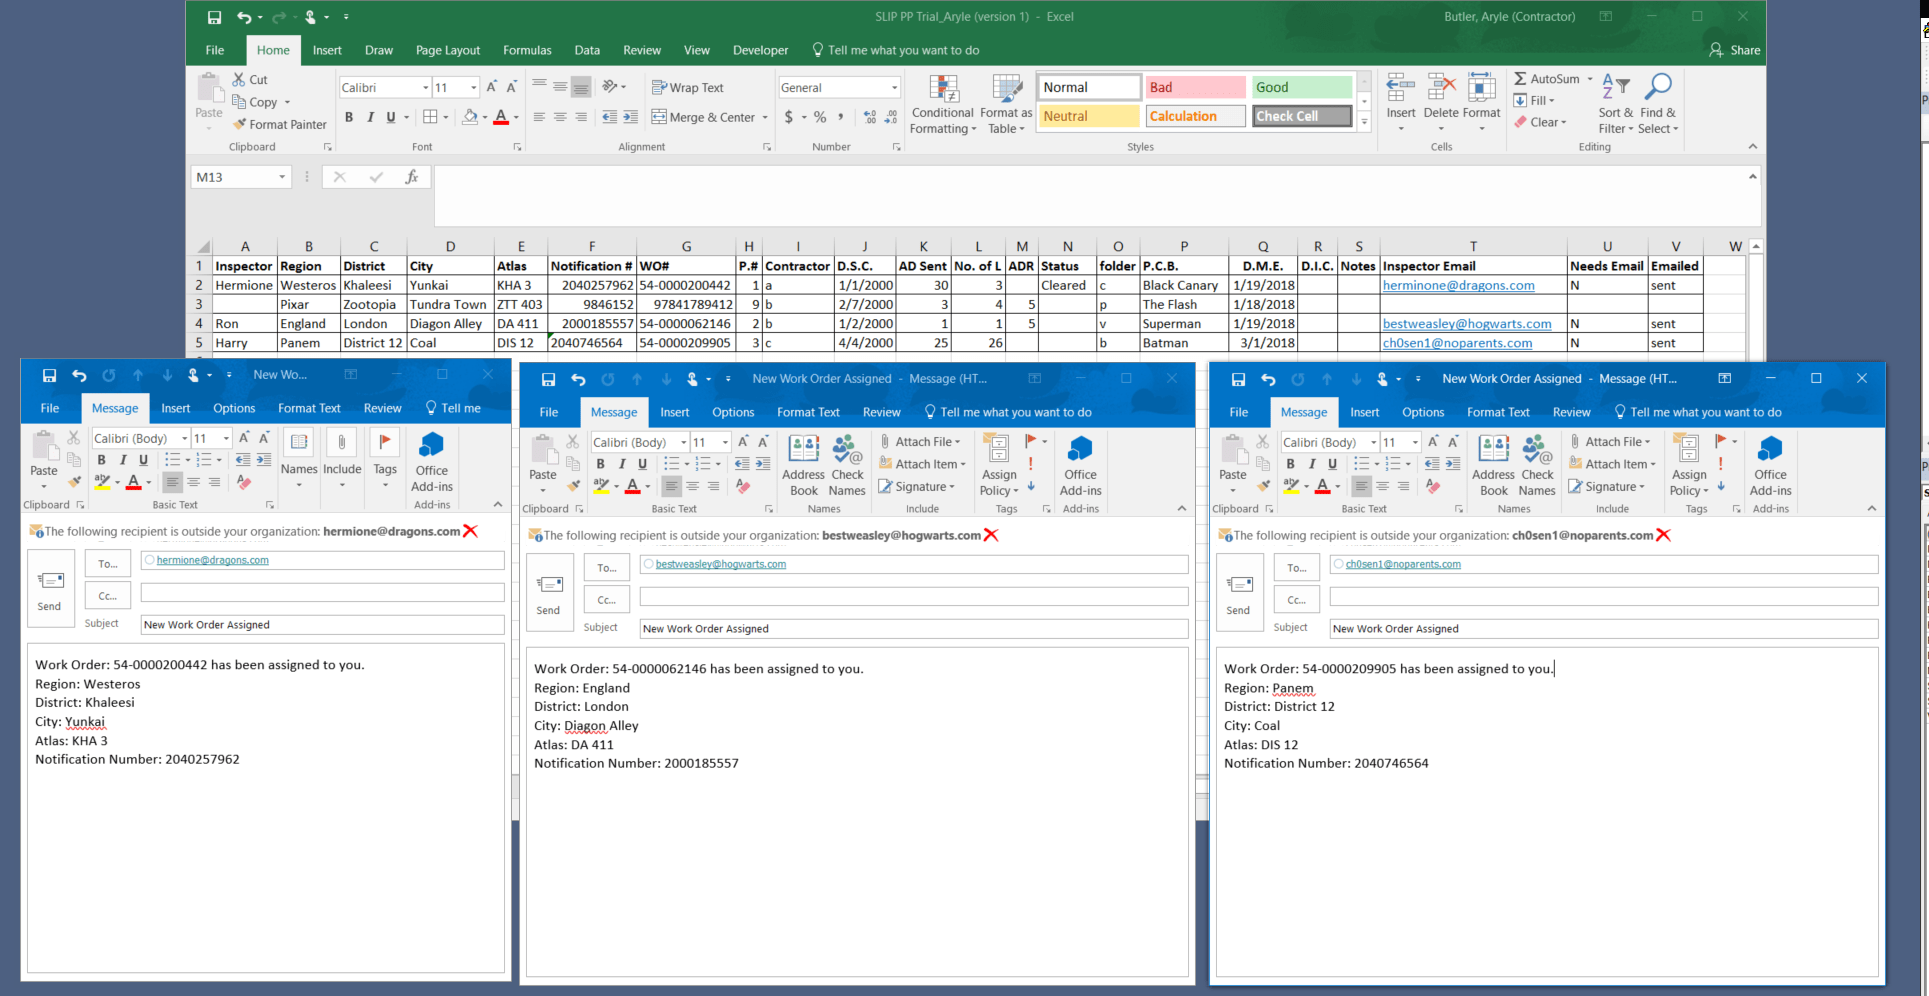 Excel Vba To Email Each Row Based On Criteria